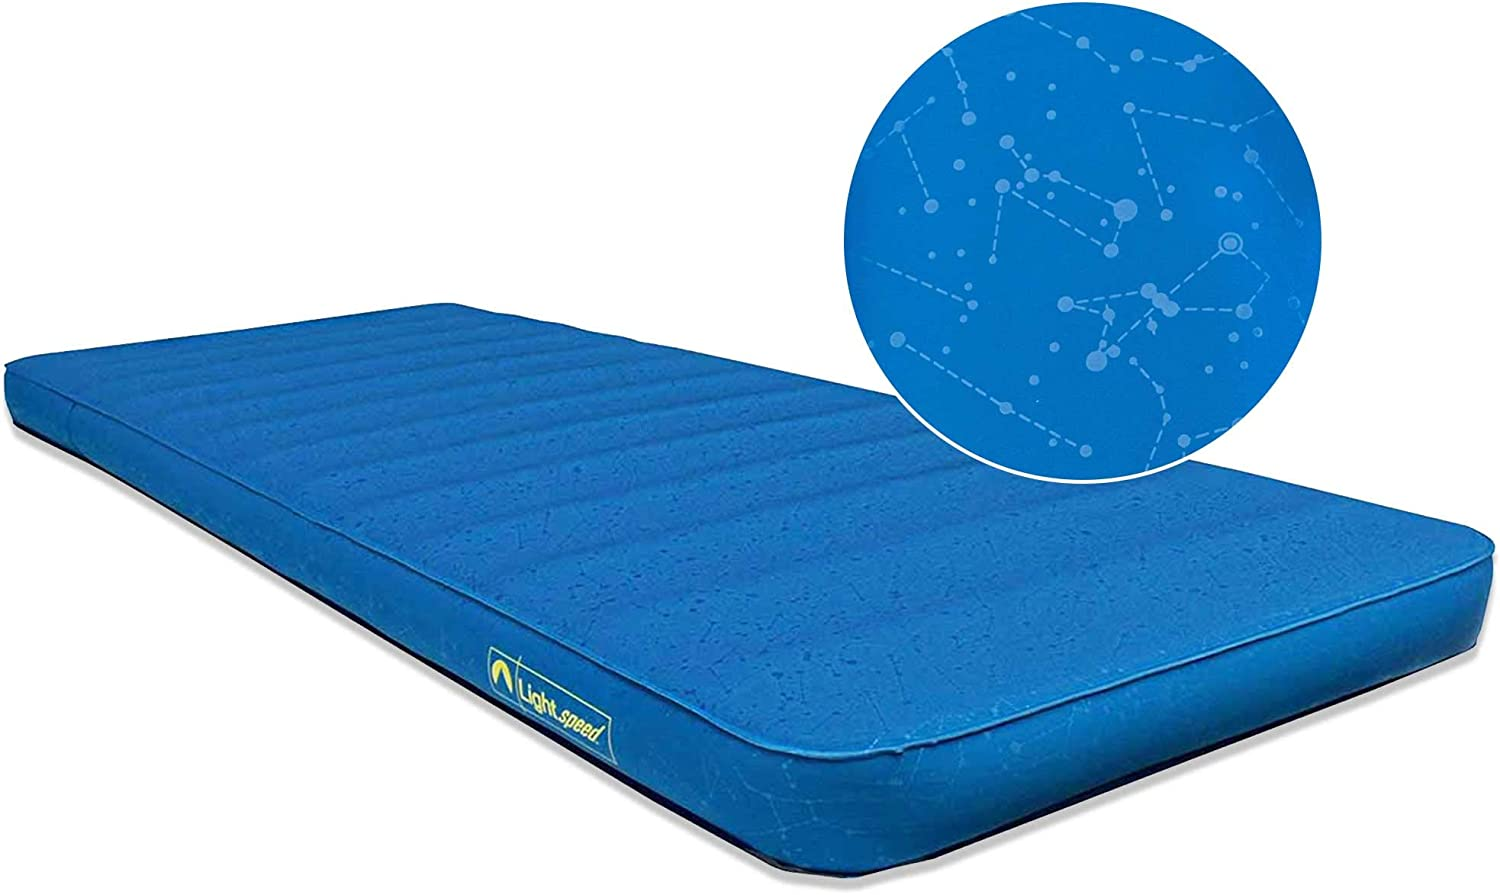 Lightspeed Outdoors XL Super Plush FlexForm Premium Self-Inflating Insulated Sleep and Camp Foam Pad